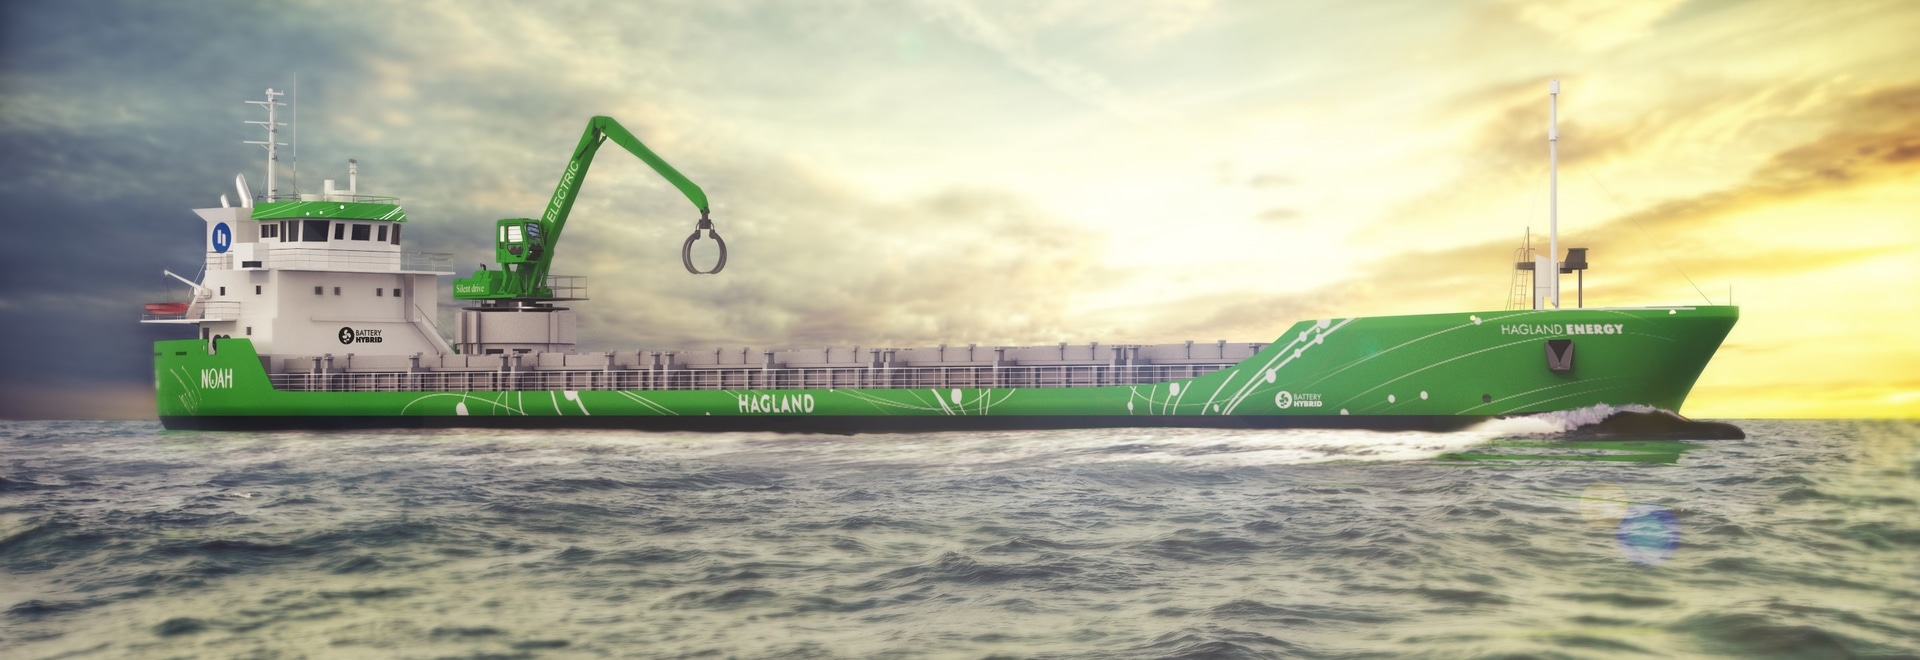 Wärtsilä au 1er navire hybride de mer de la modification de Carry Out World pour faire court